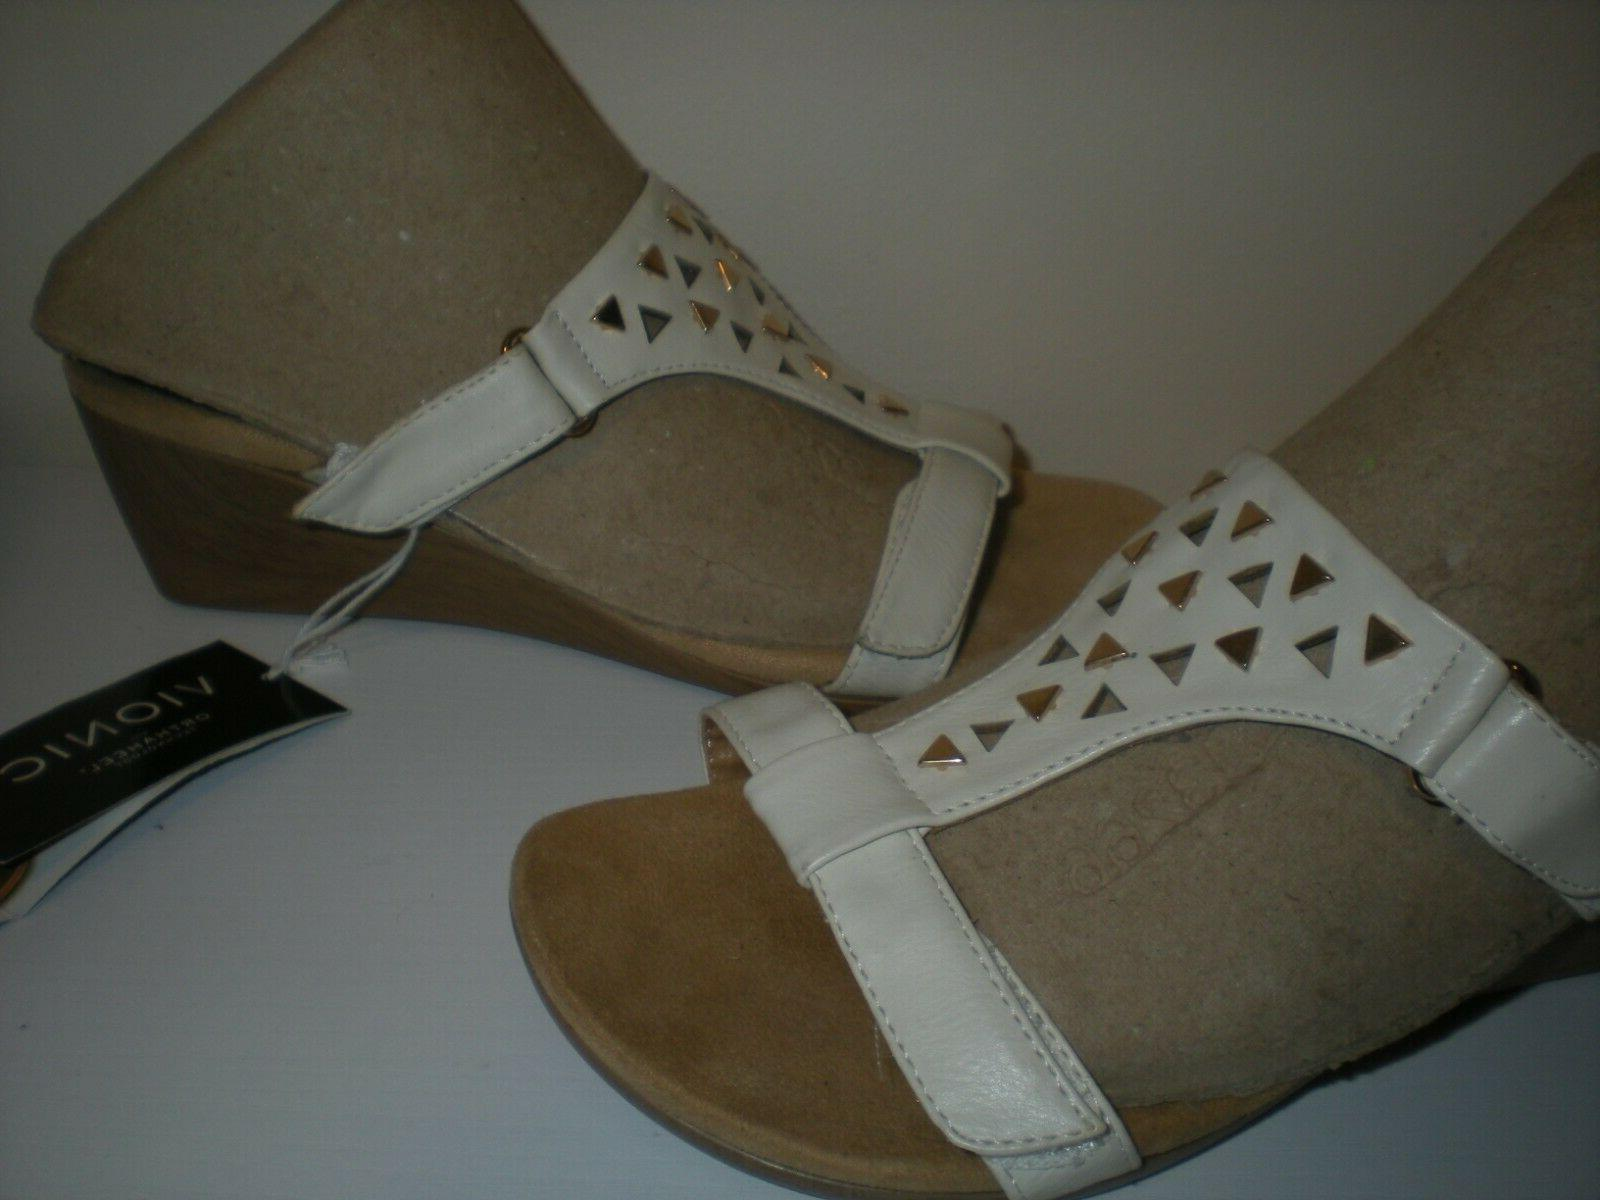 Vionic Women's Studded Triangle Sandals Size 5